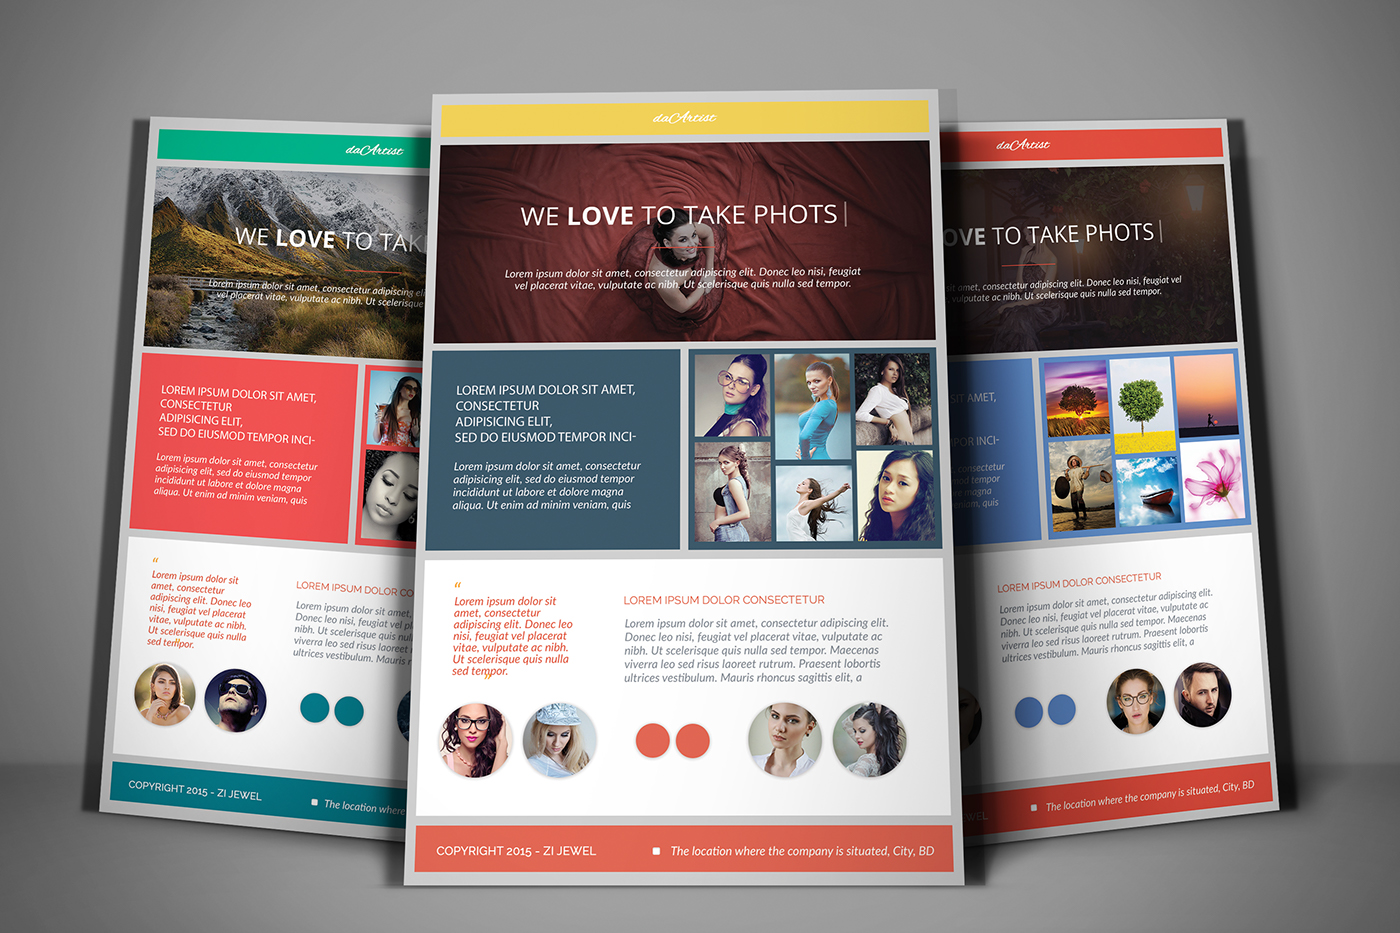 flyer poster business corporate photo free freebie download template photoshop psd high quality print ready